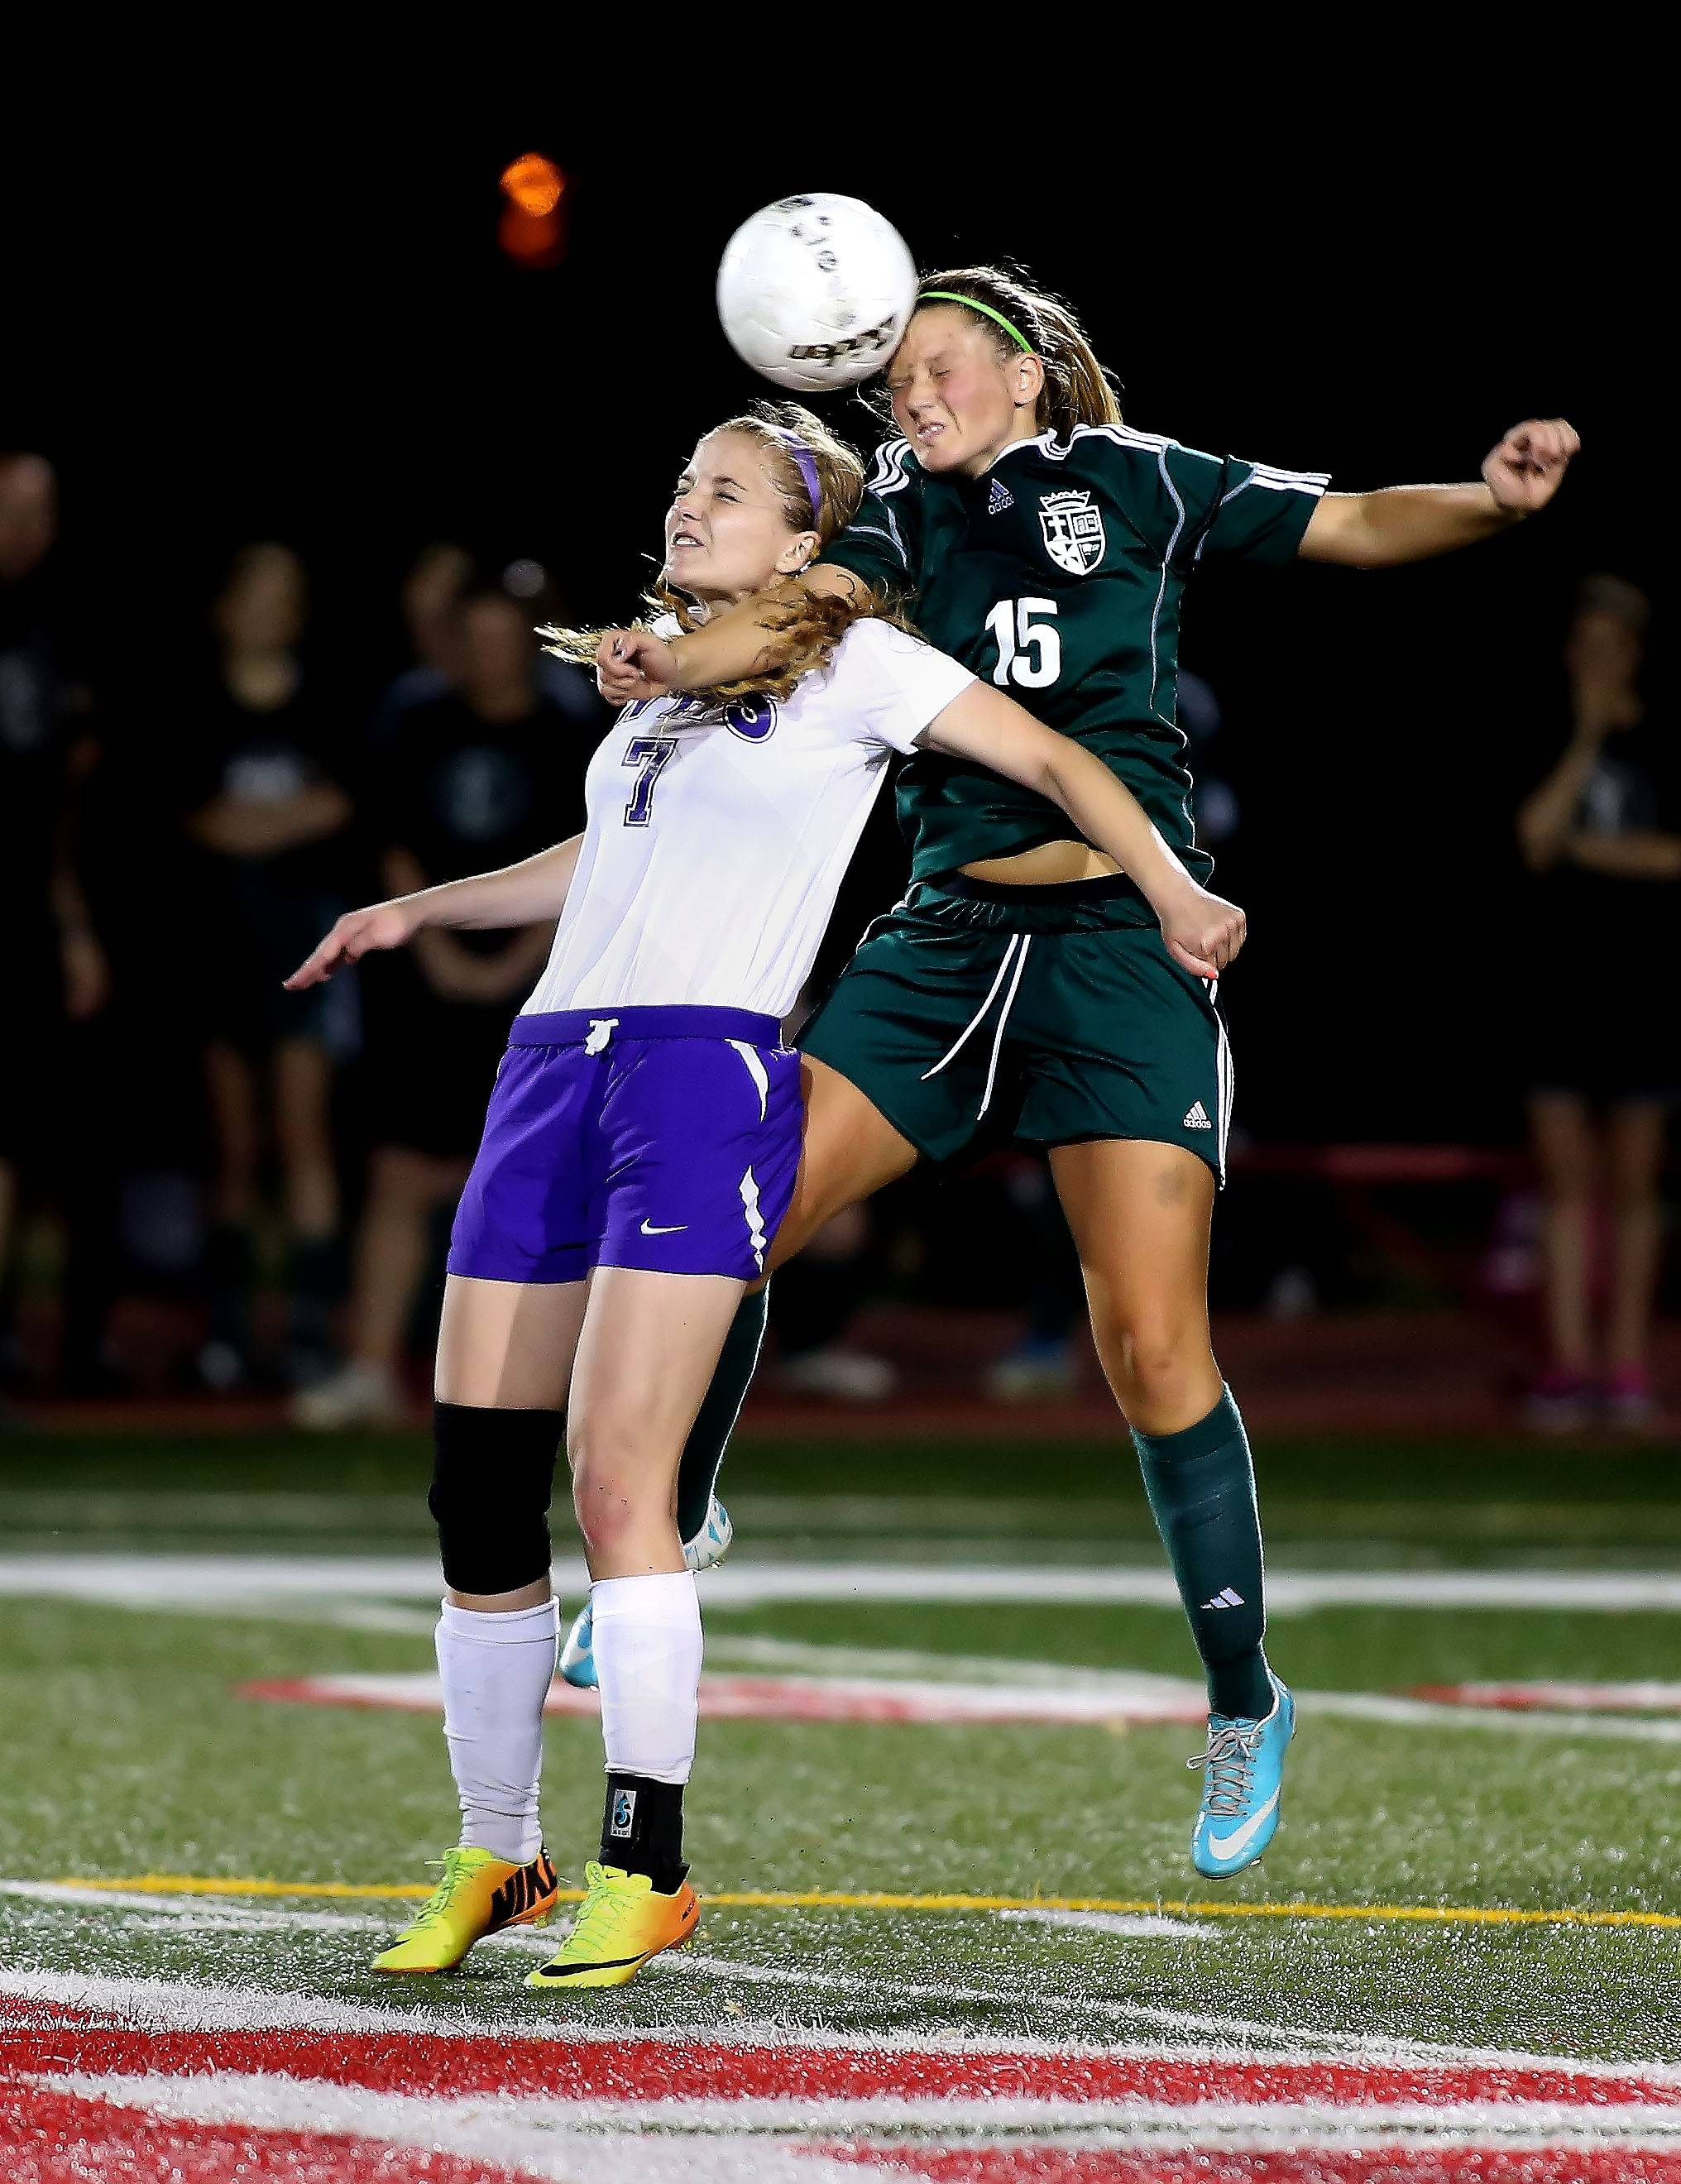 St. Edward's Emily Witt, right, gets to the header over Manteno's Emily Gaither during the Class 1A state soccer semifinals at North Central College in Naperville on Friday.